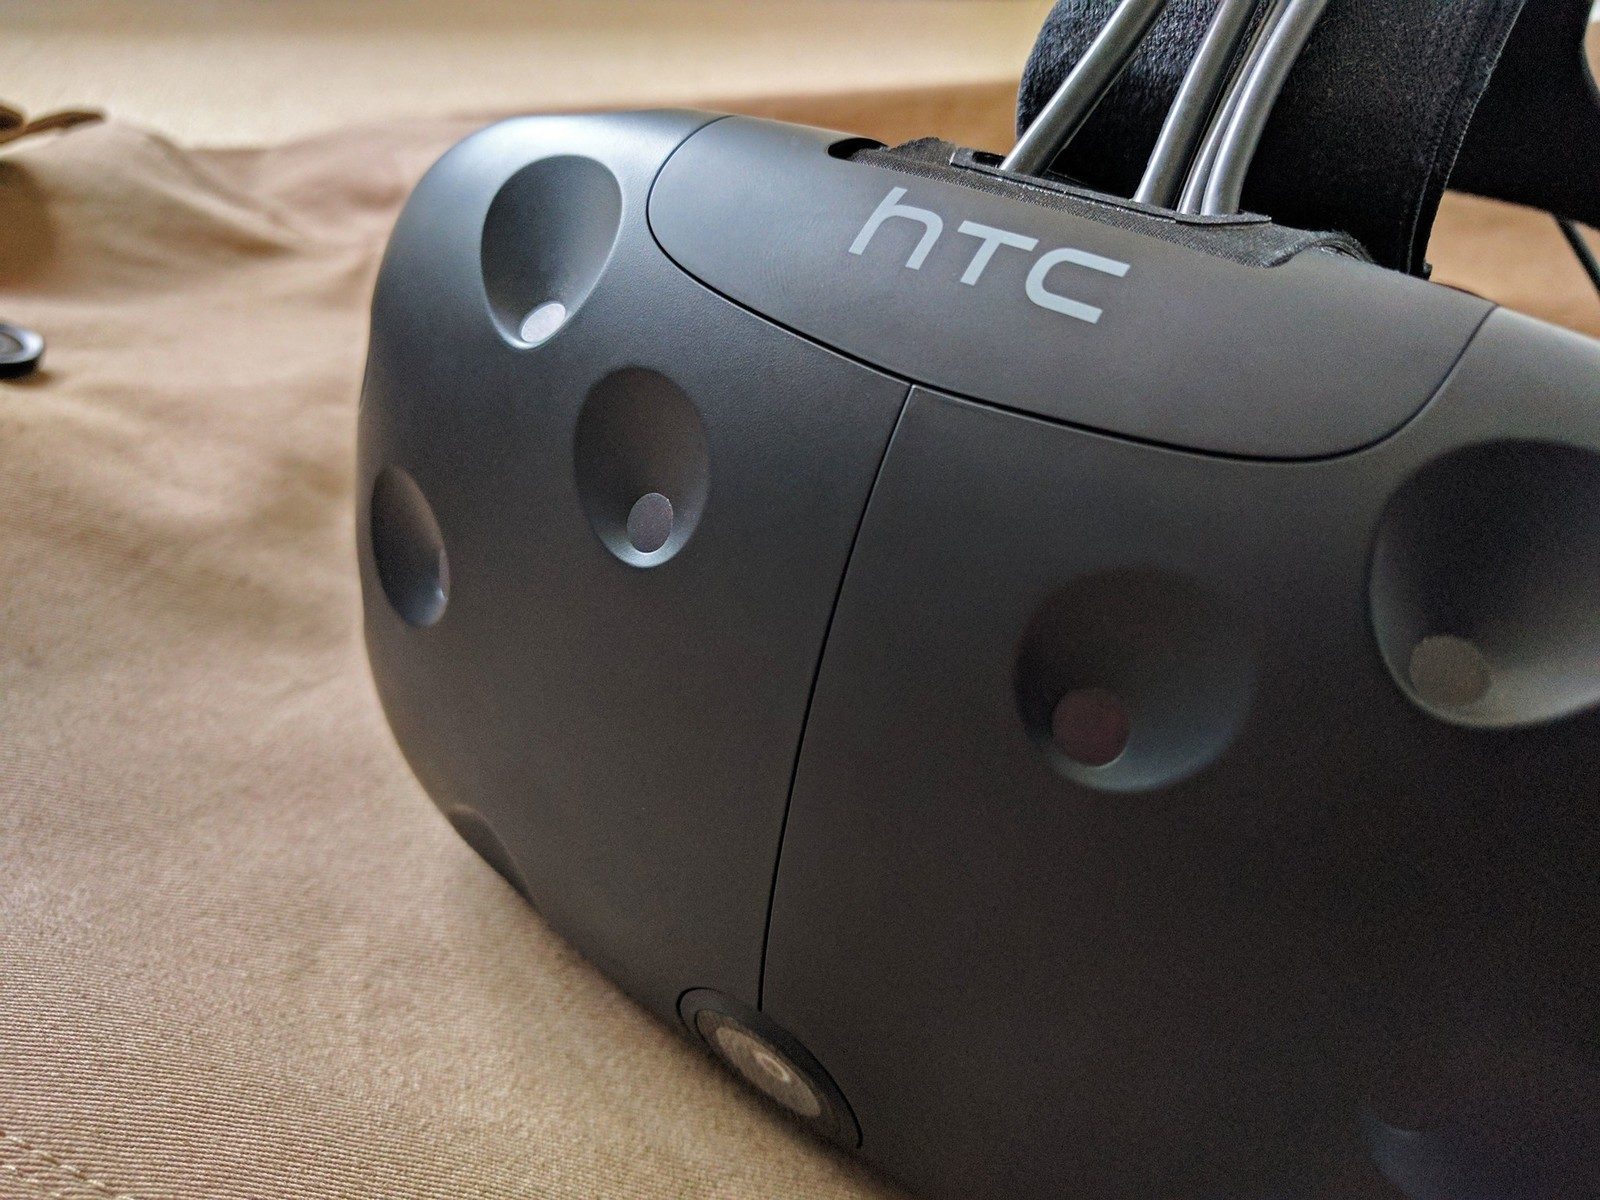 How to fix error 208 with driver uninstall issue on HTC Vive